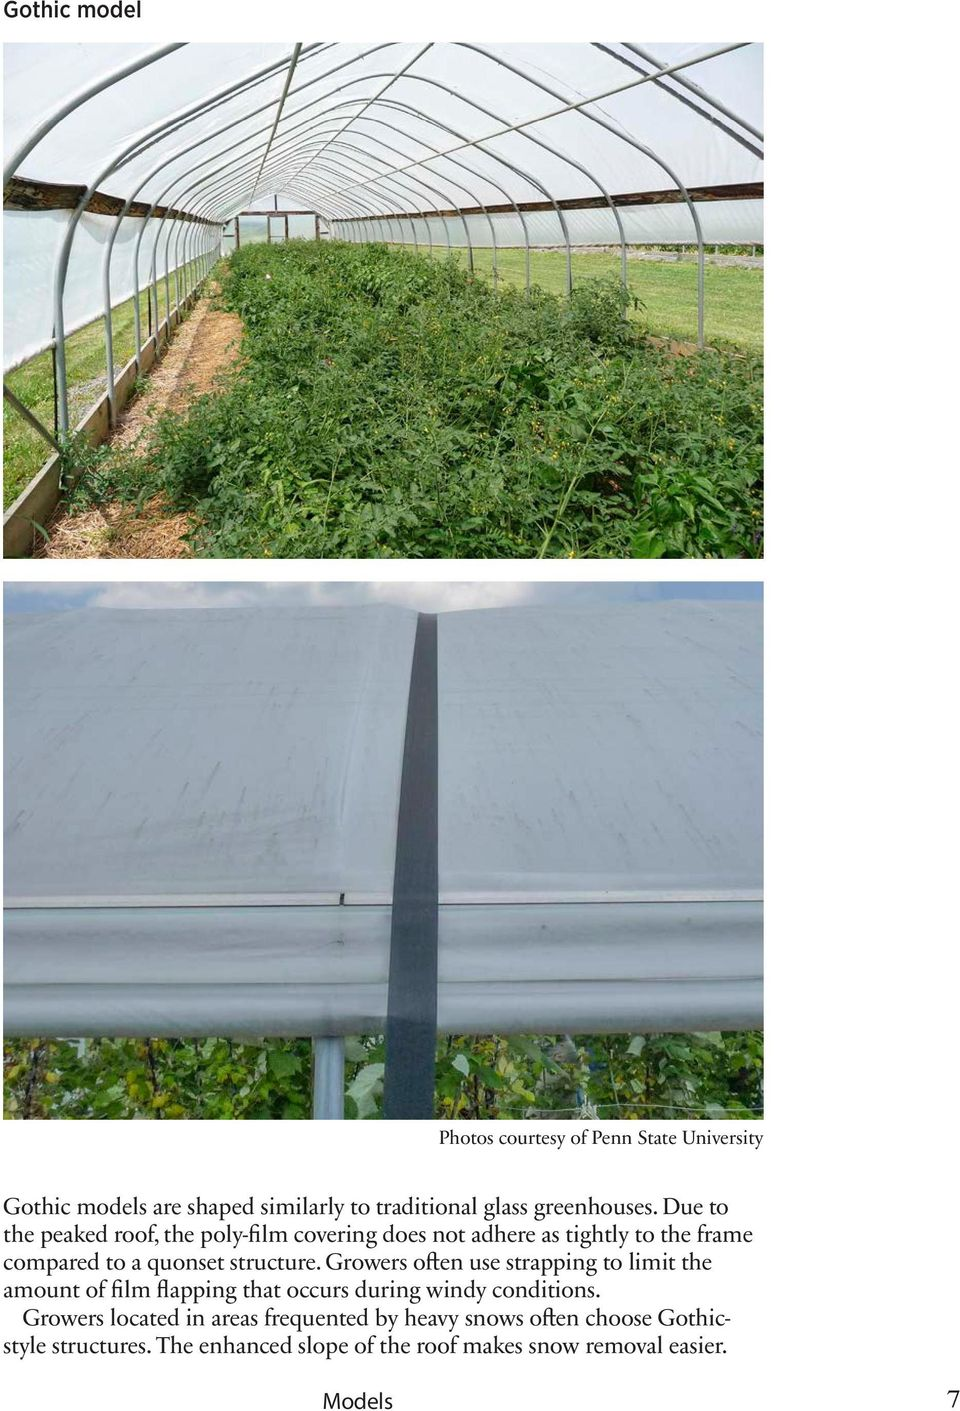 Growers often use strapping to limit the amount of film flapping that occurs during windy conditions.